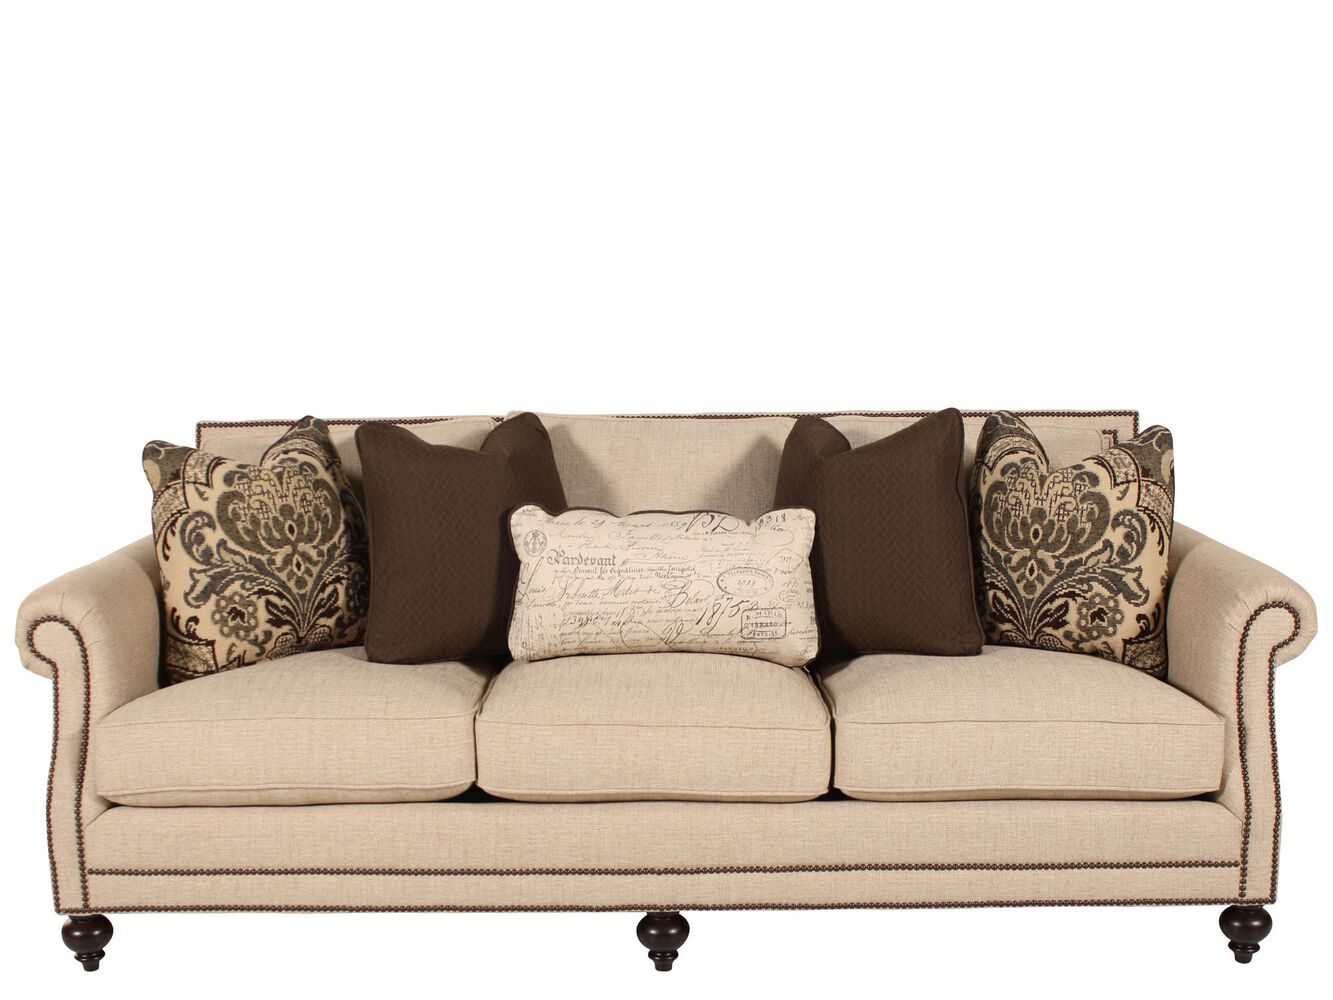 Bernhardt brae sofa mathis brothers furniture Bernhardt living room furniture